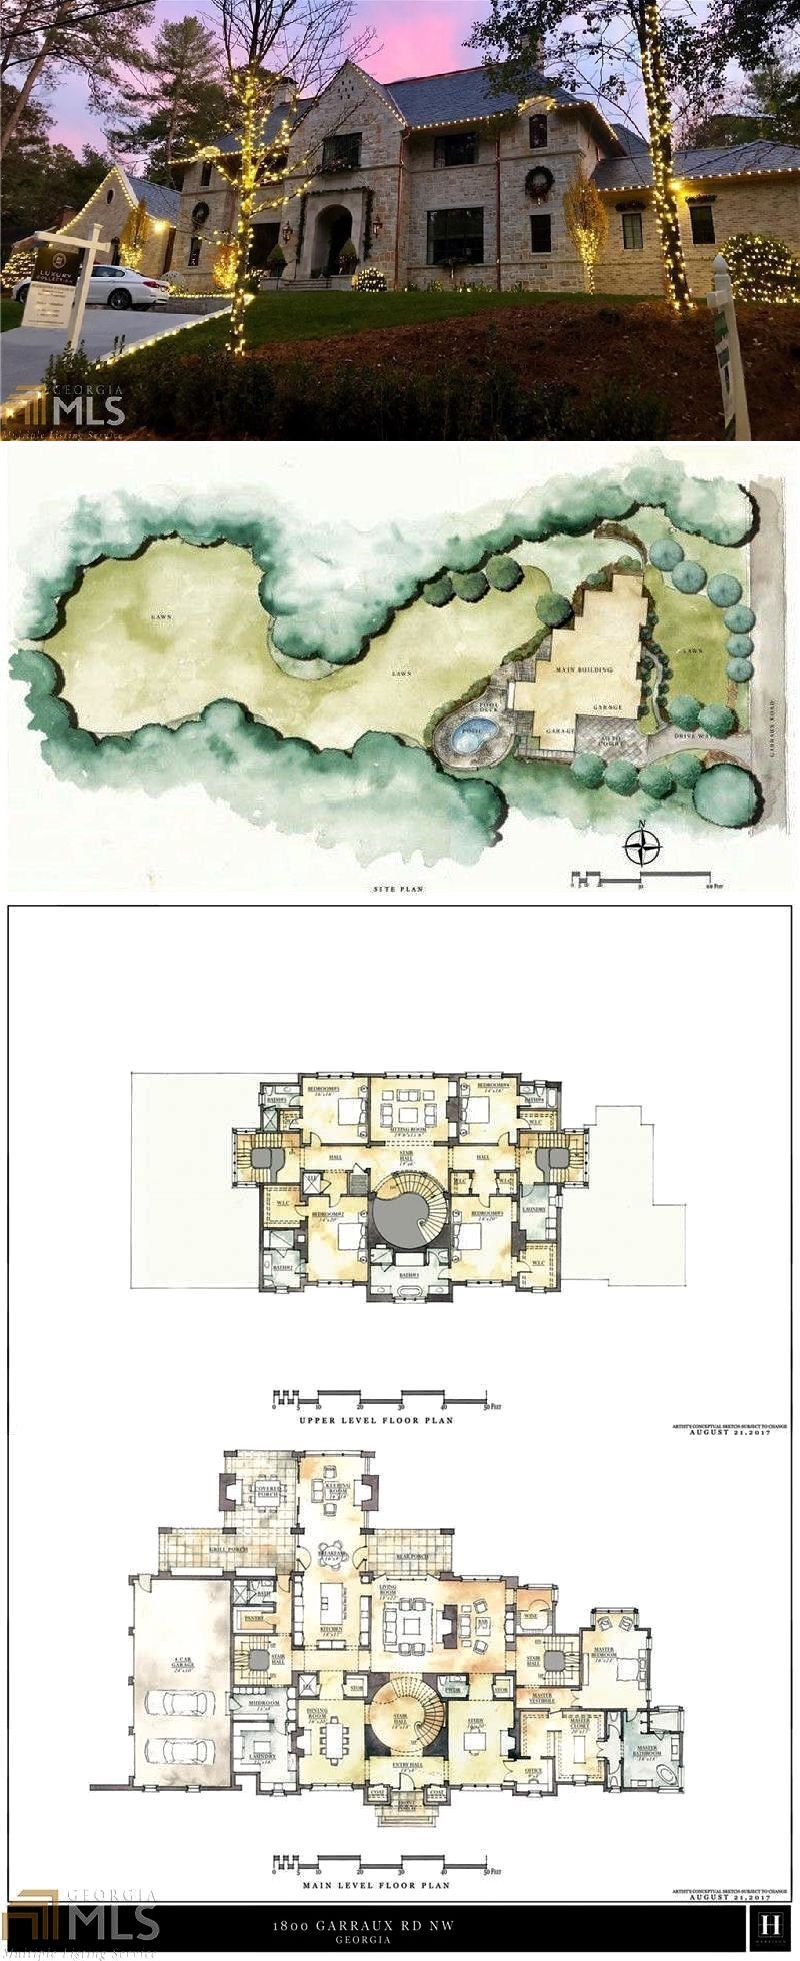 1800 Garraux Rd Nw Atlanta Ga 30327 Realtor Com Luxury House Plans Mansion Floor Plan Modern House Plans